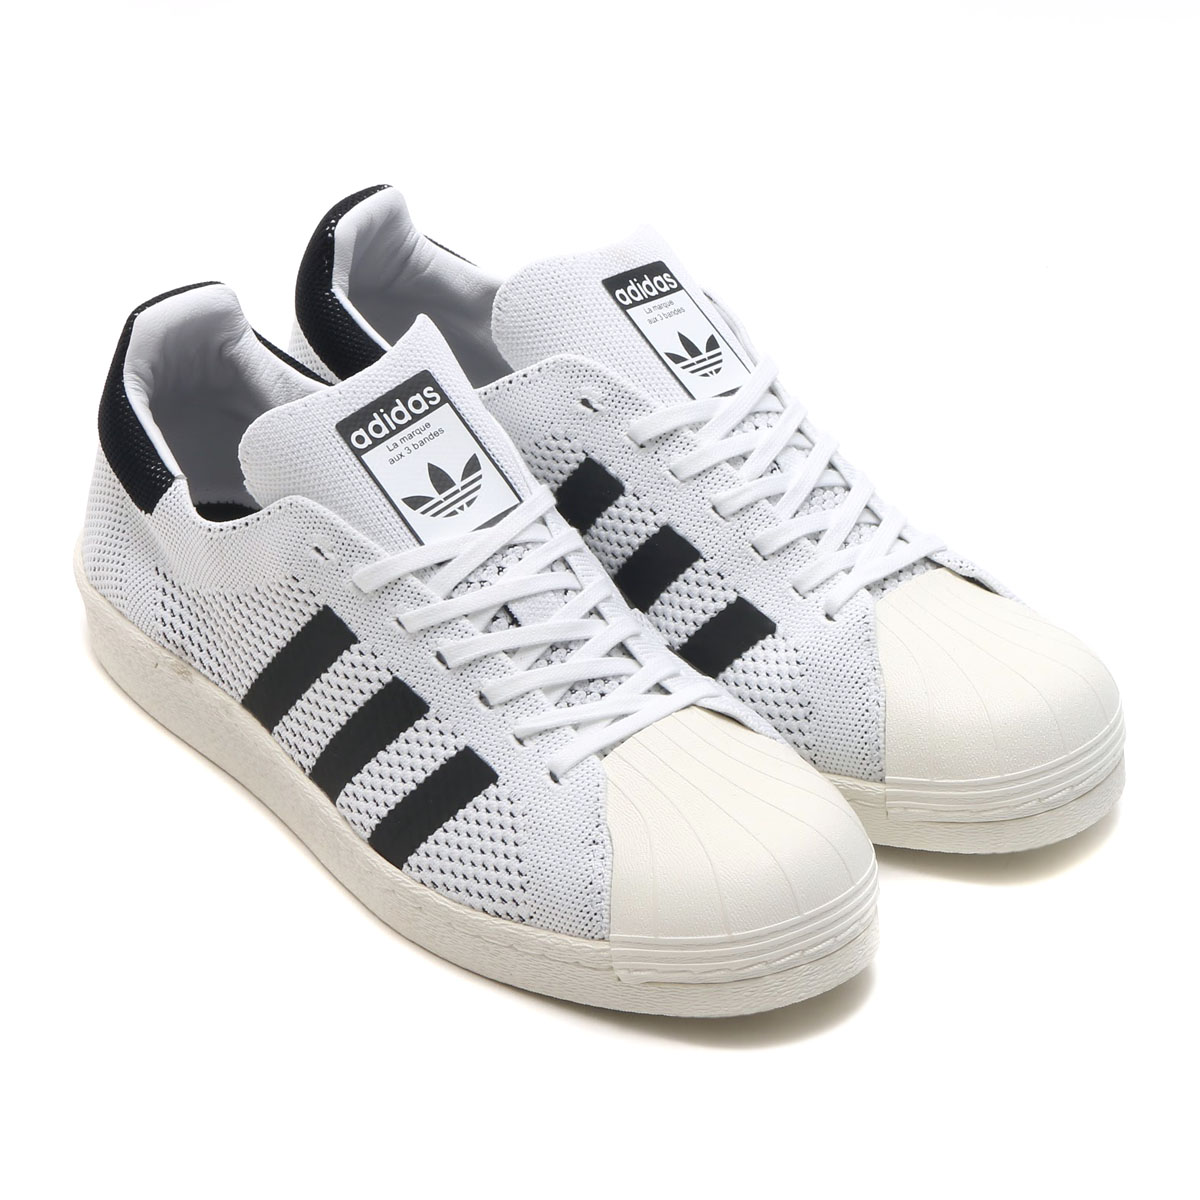 Buy Cheap Adidas Originals Superstar Ii White Sneakers for Men Online India